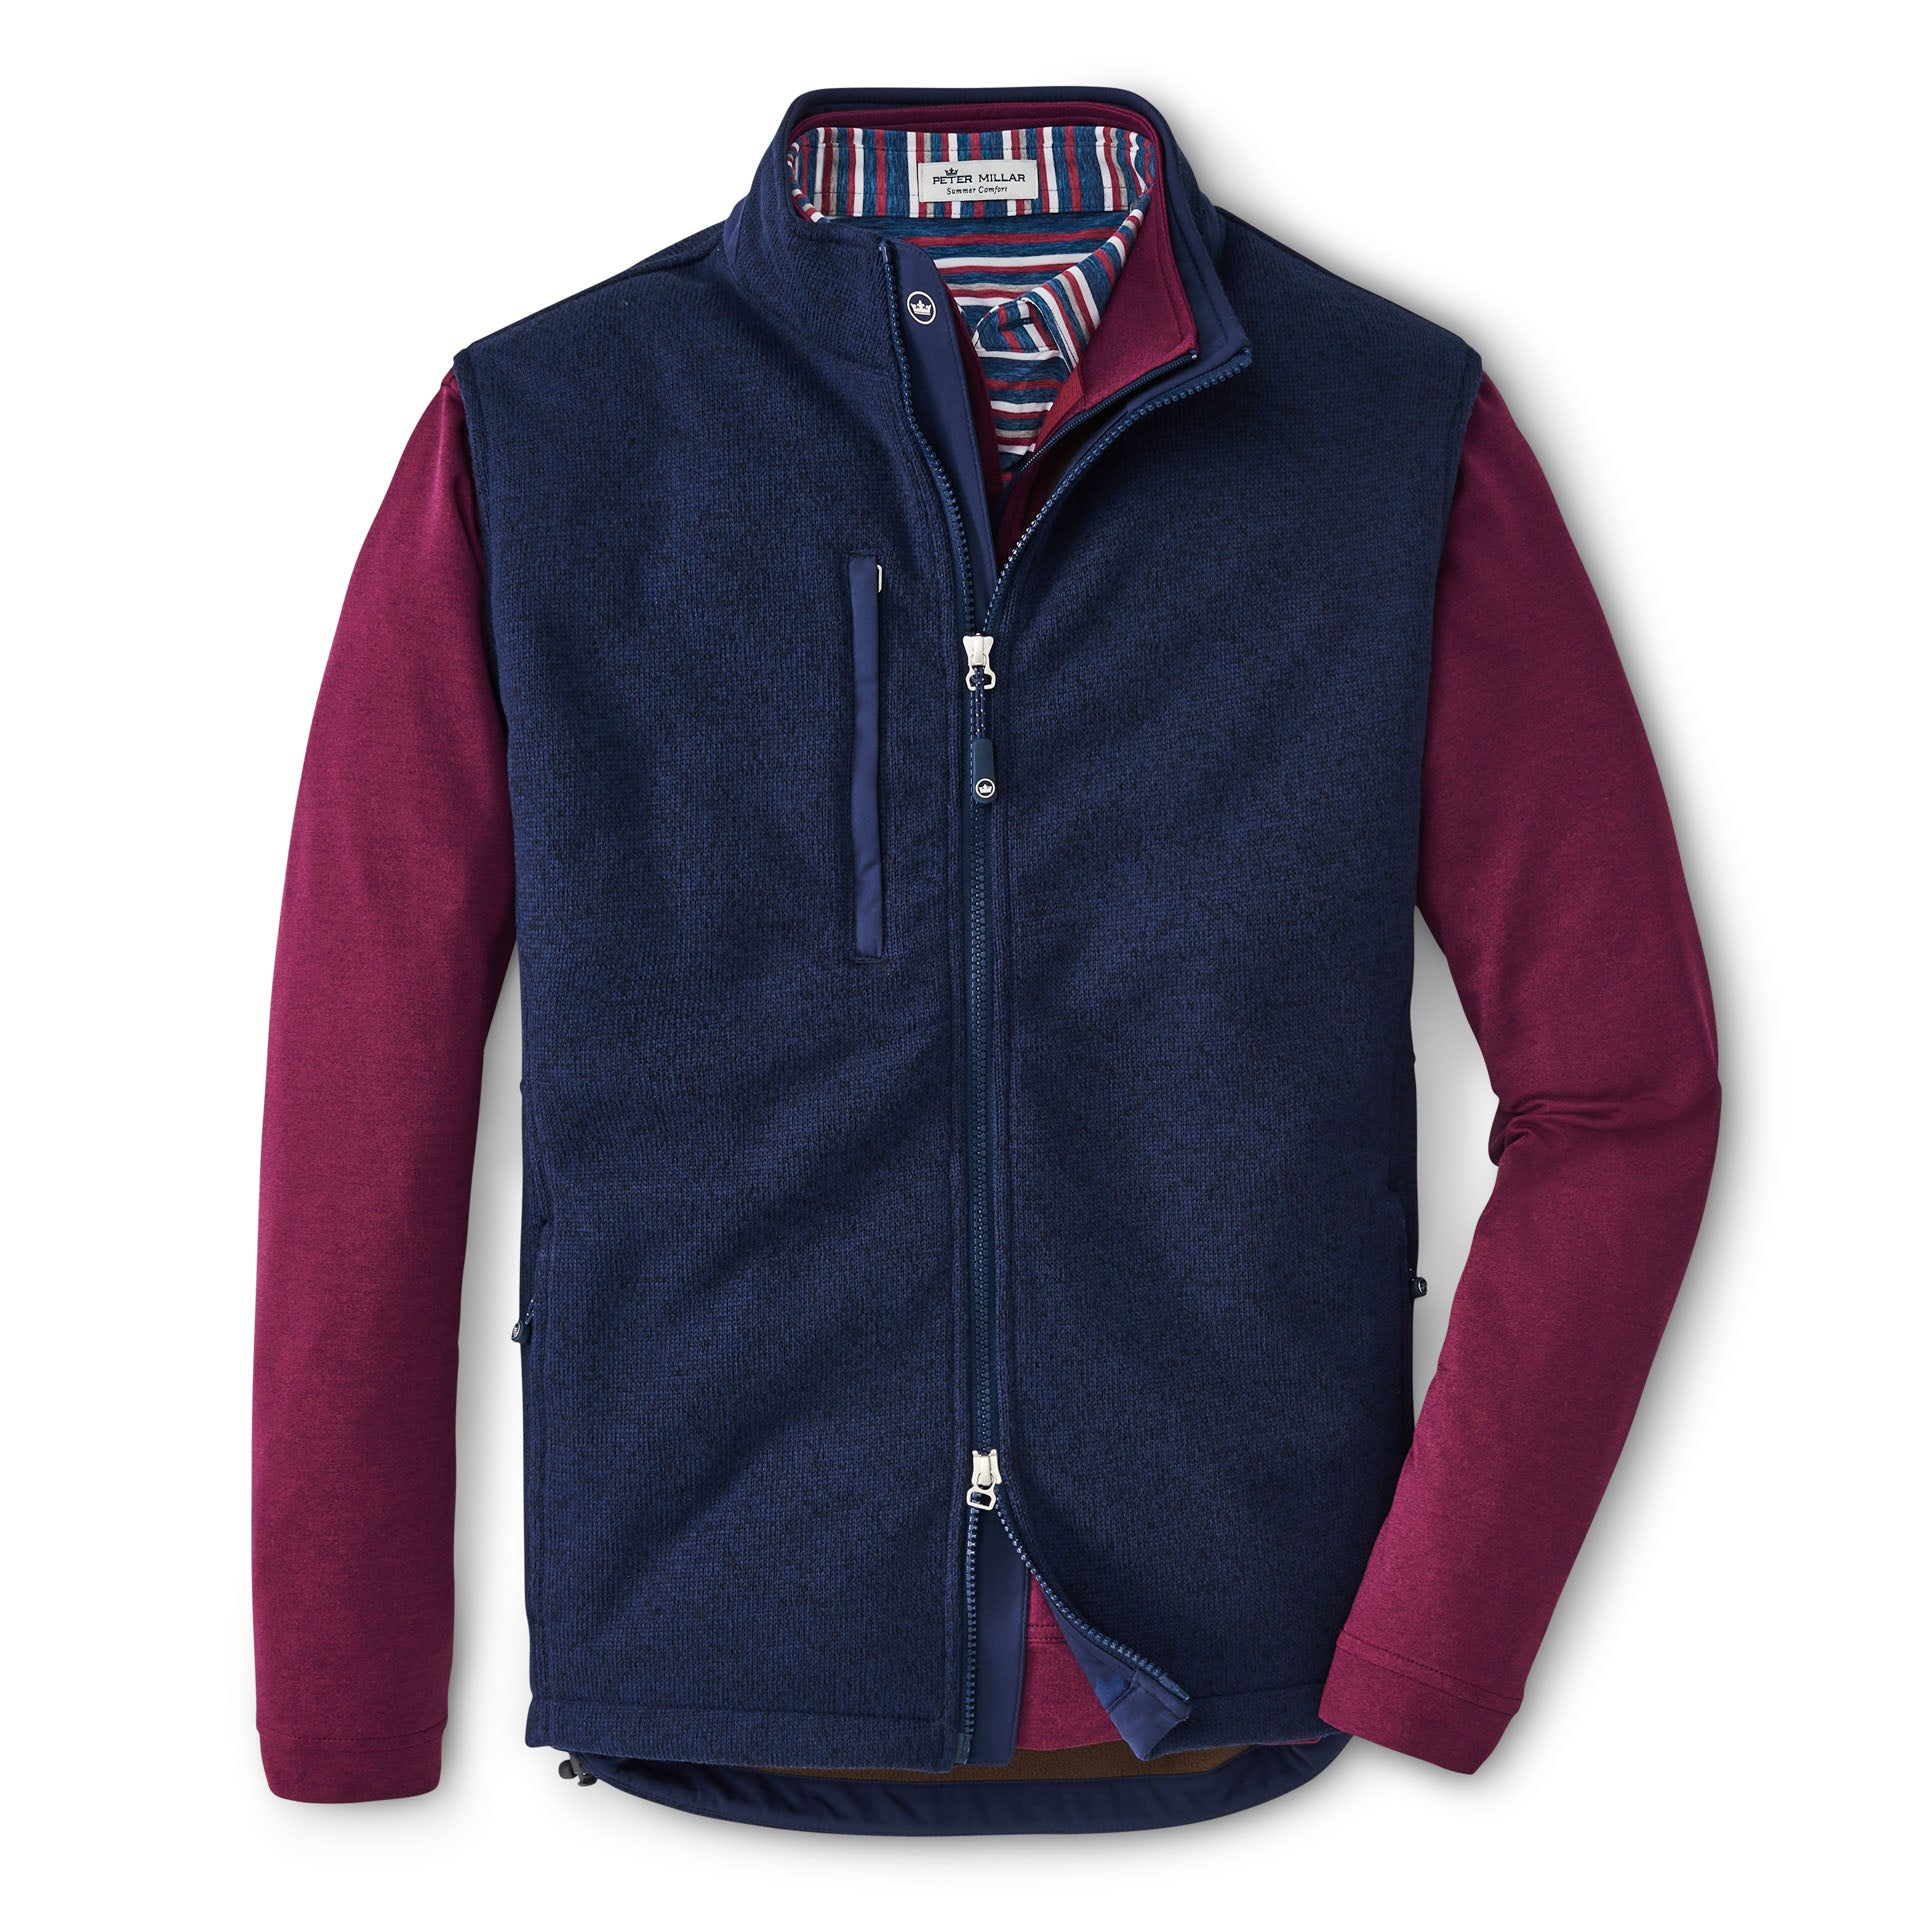 Condor Sweater Fleece Vest in Navy